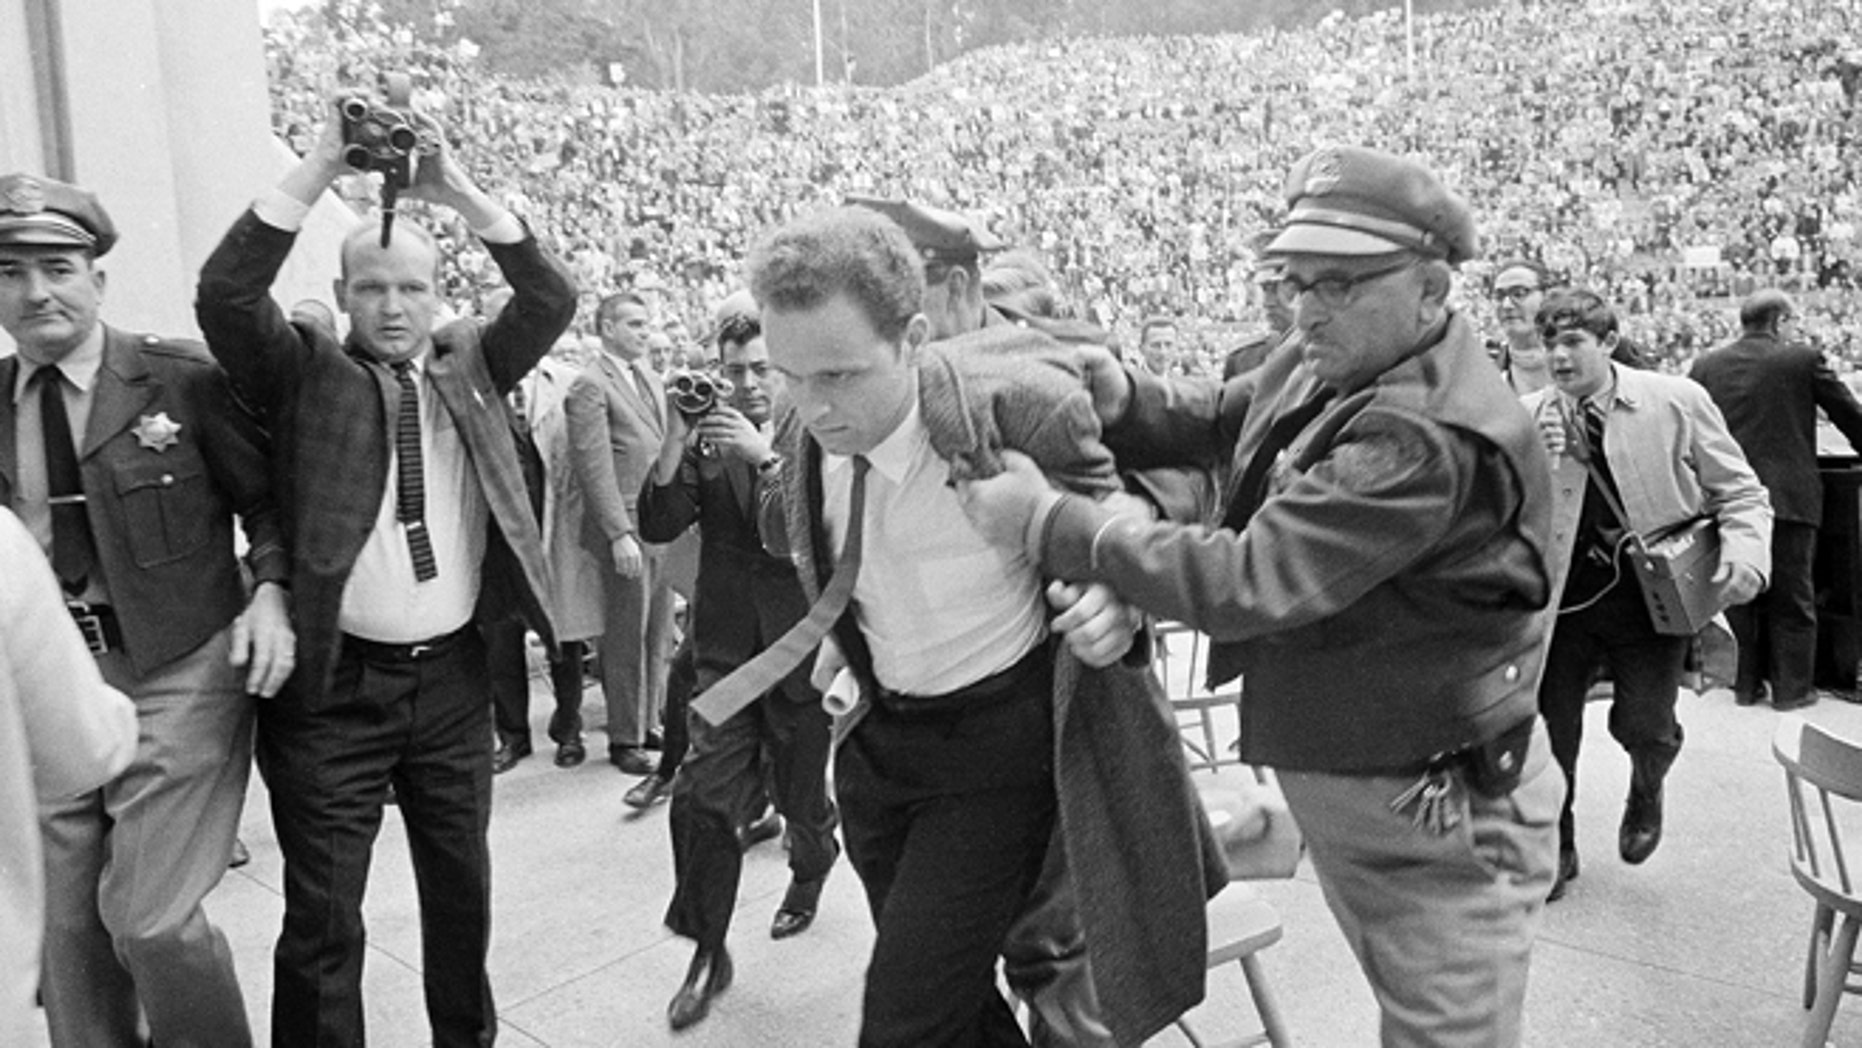 FILE 1964: Mario Savio, leader of the Berkeley Free Speech Movement, is restrained by police as he walks on to the platform at the University of California's Greek Theater in Berkeley, Calif. Savio attempted to speak directly following the appearance of University President Clark Kerr. He was later permitted to make two announcements to the assembled students.